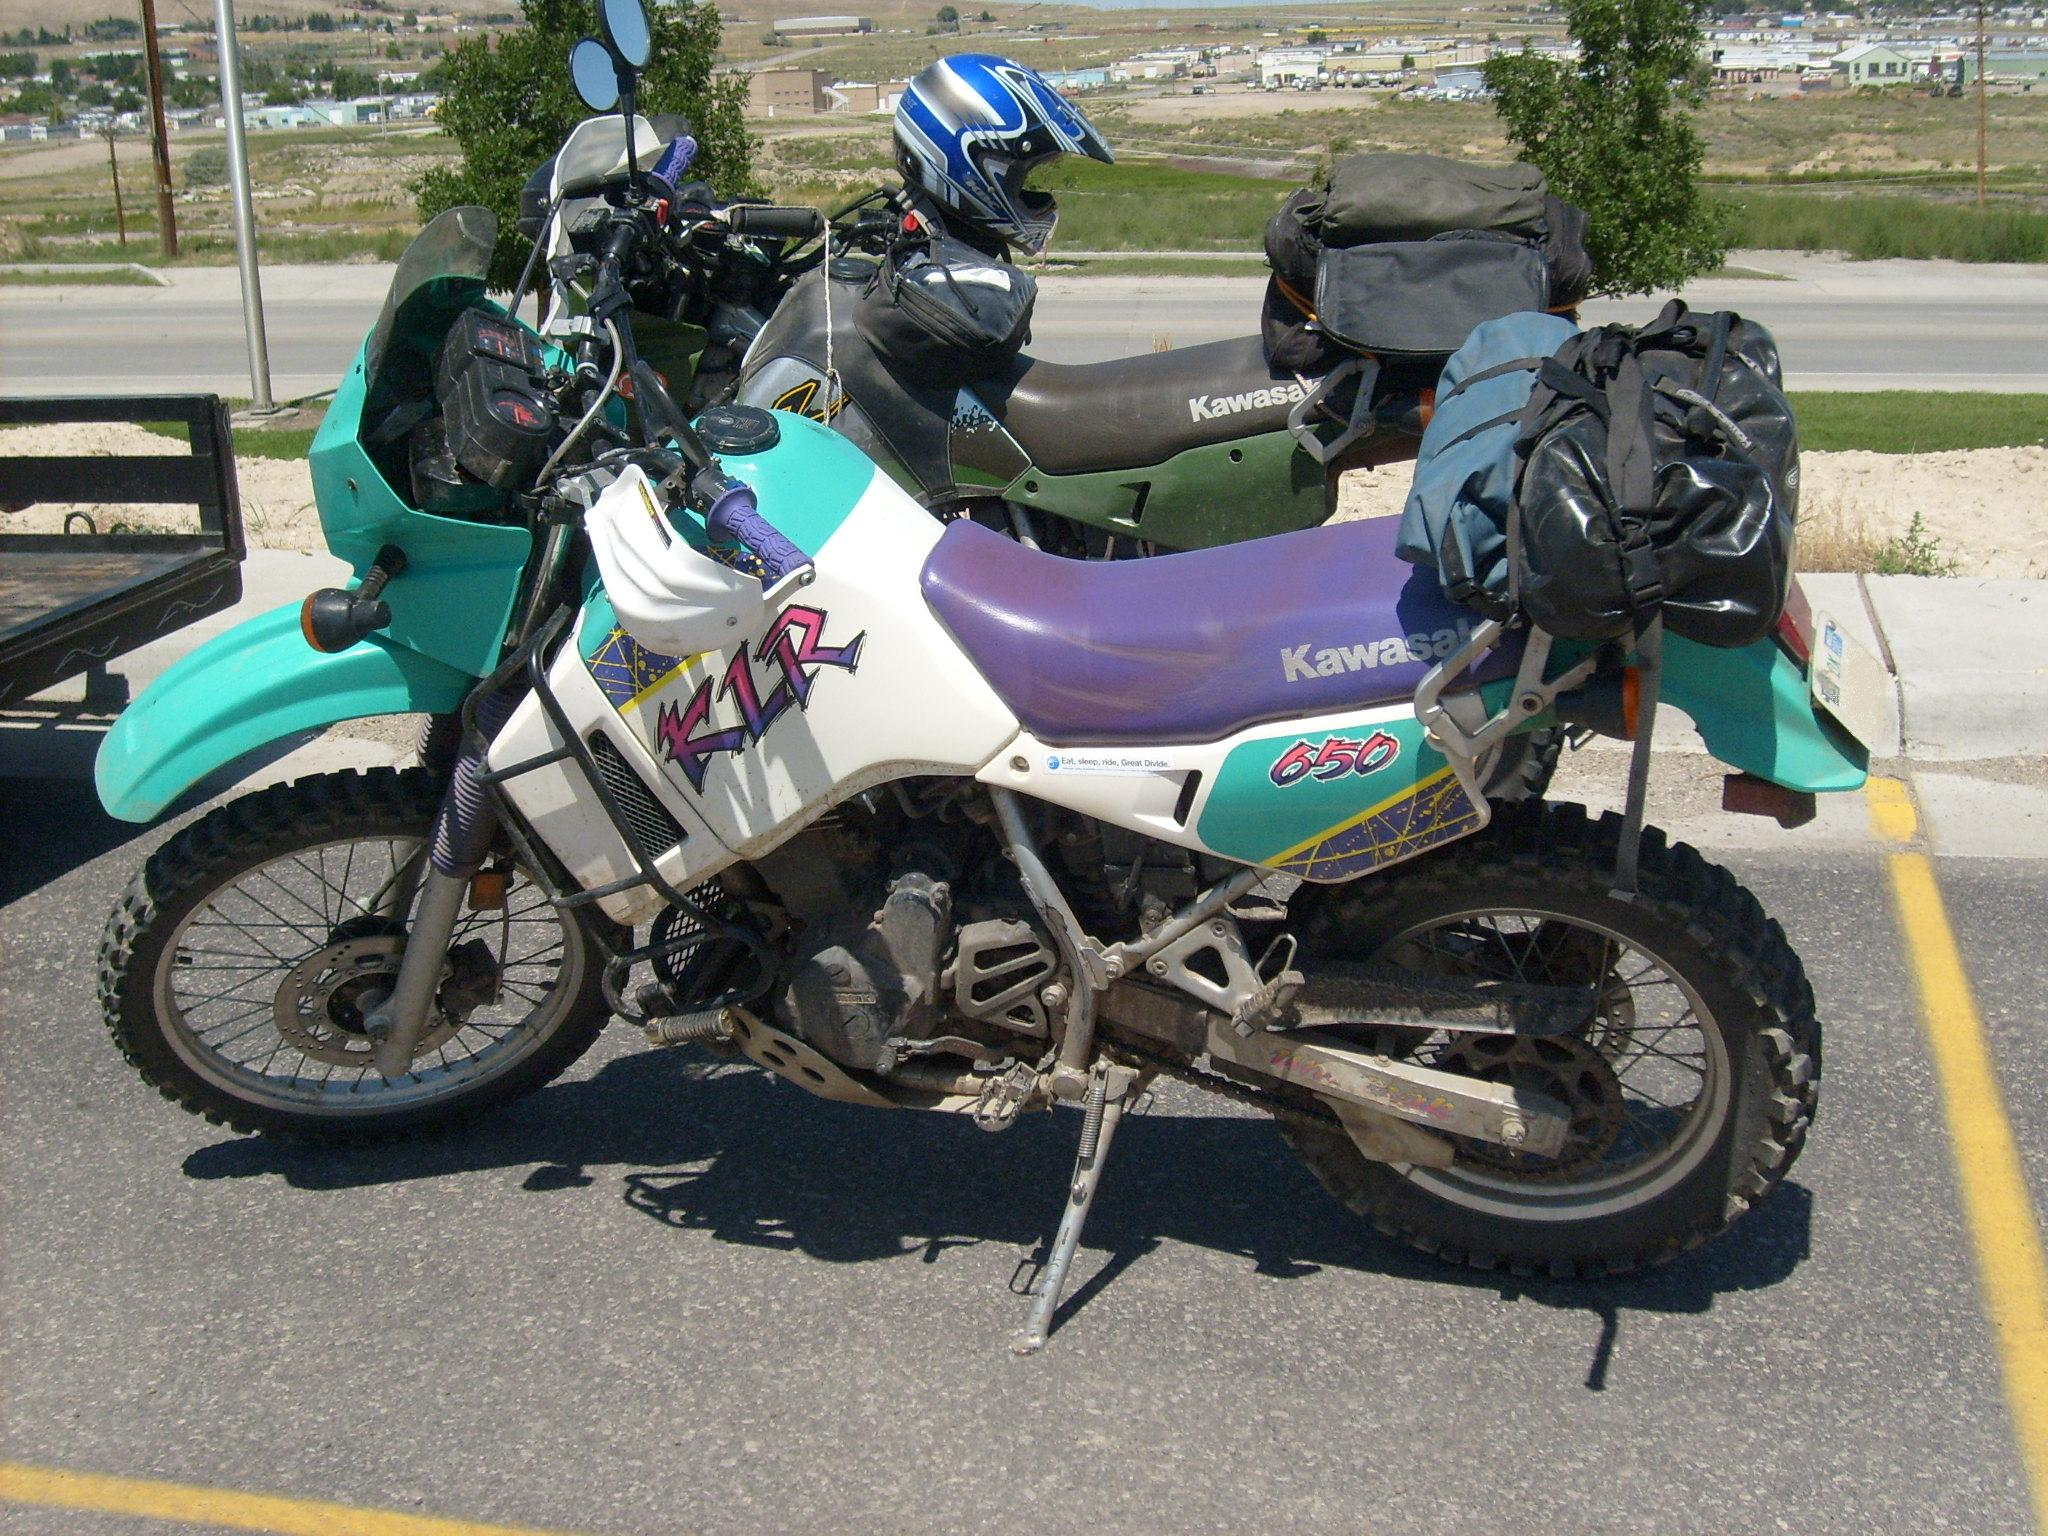 Kawasaki KLR600E (reduced effect) 1988 #6